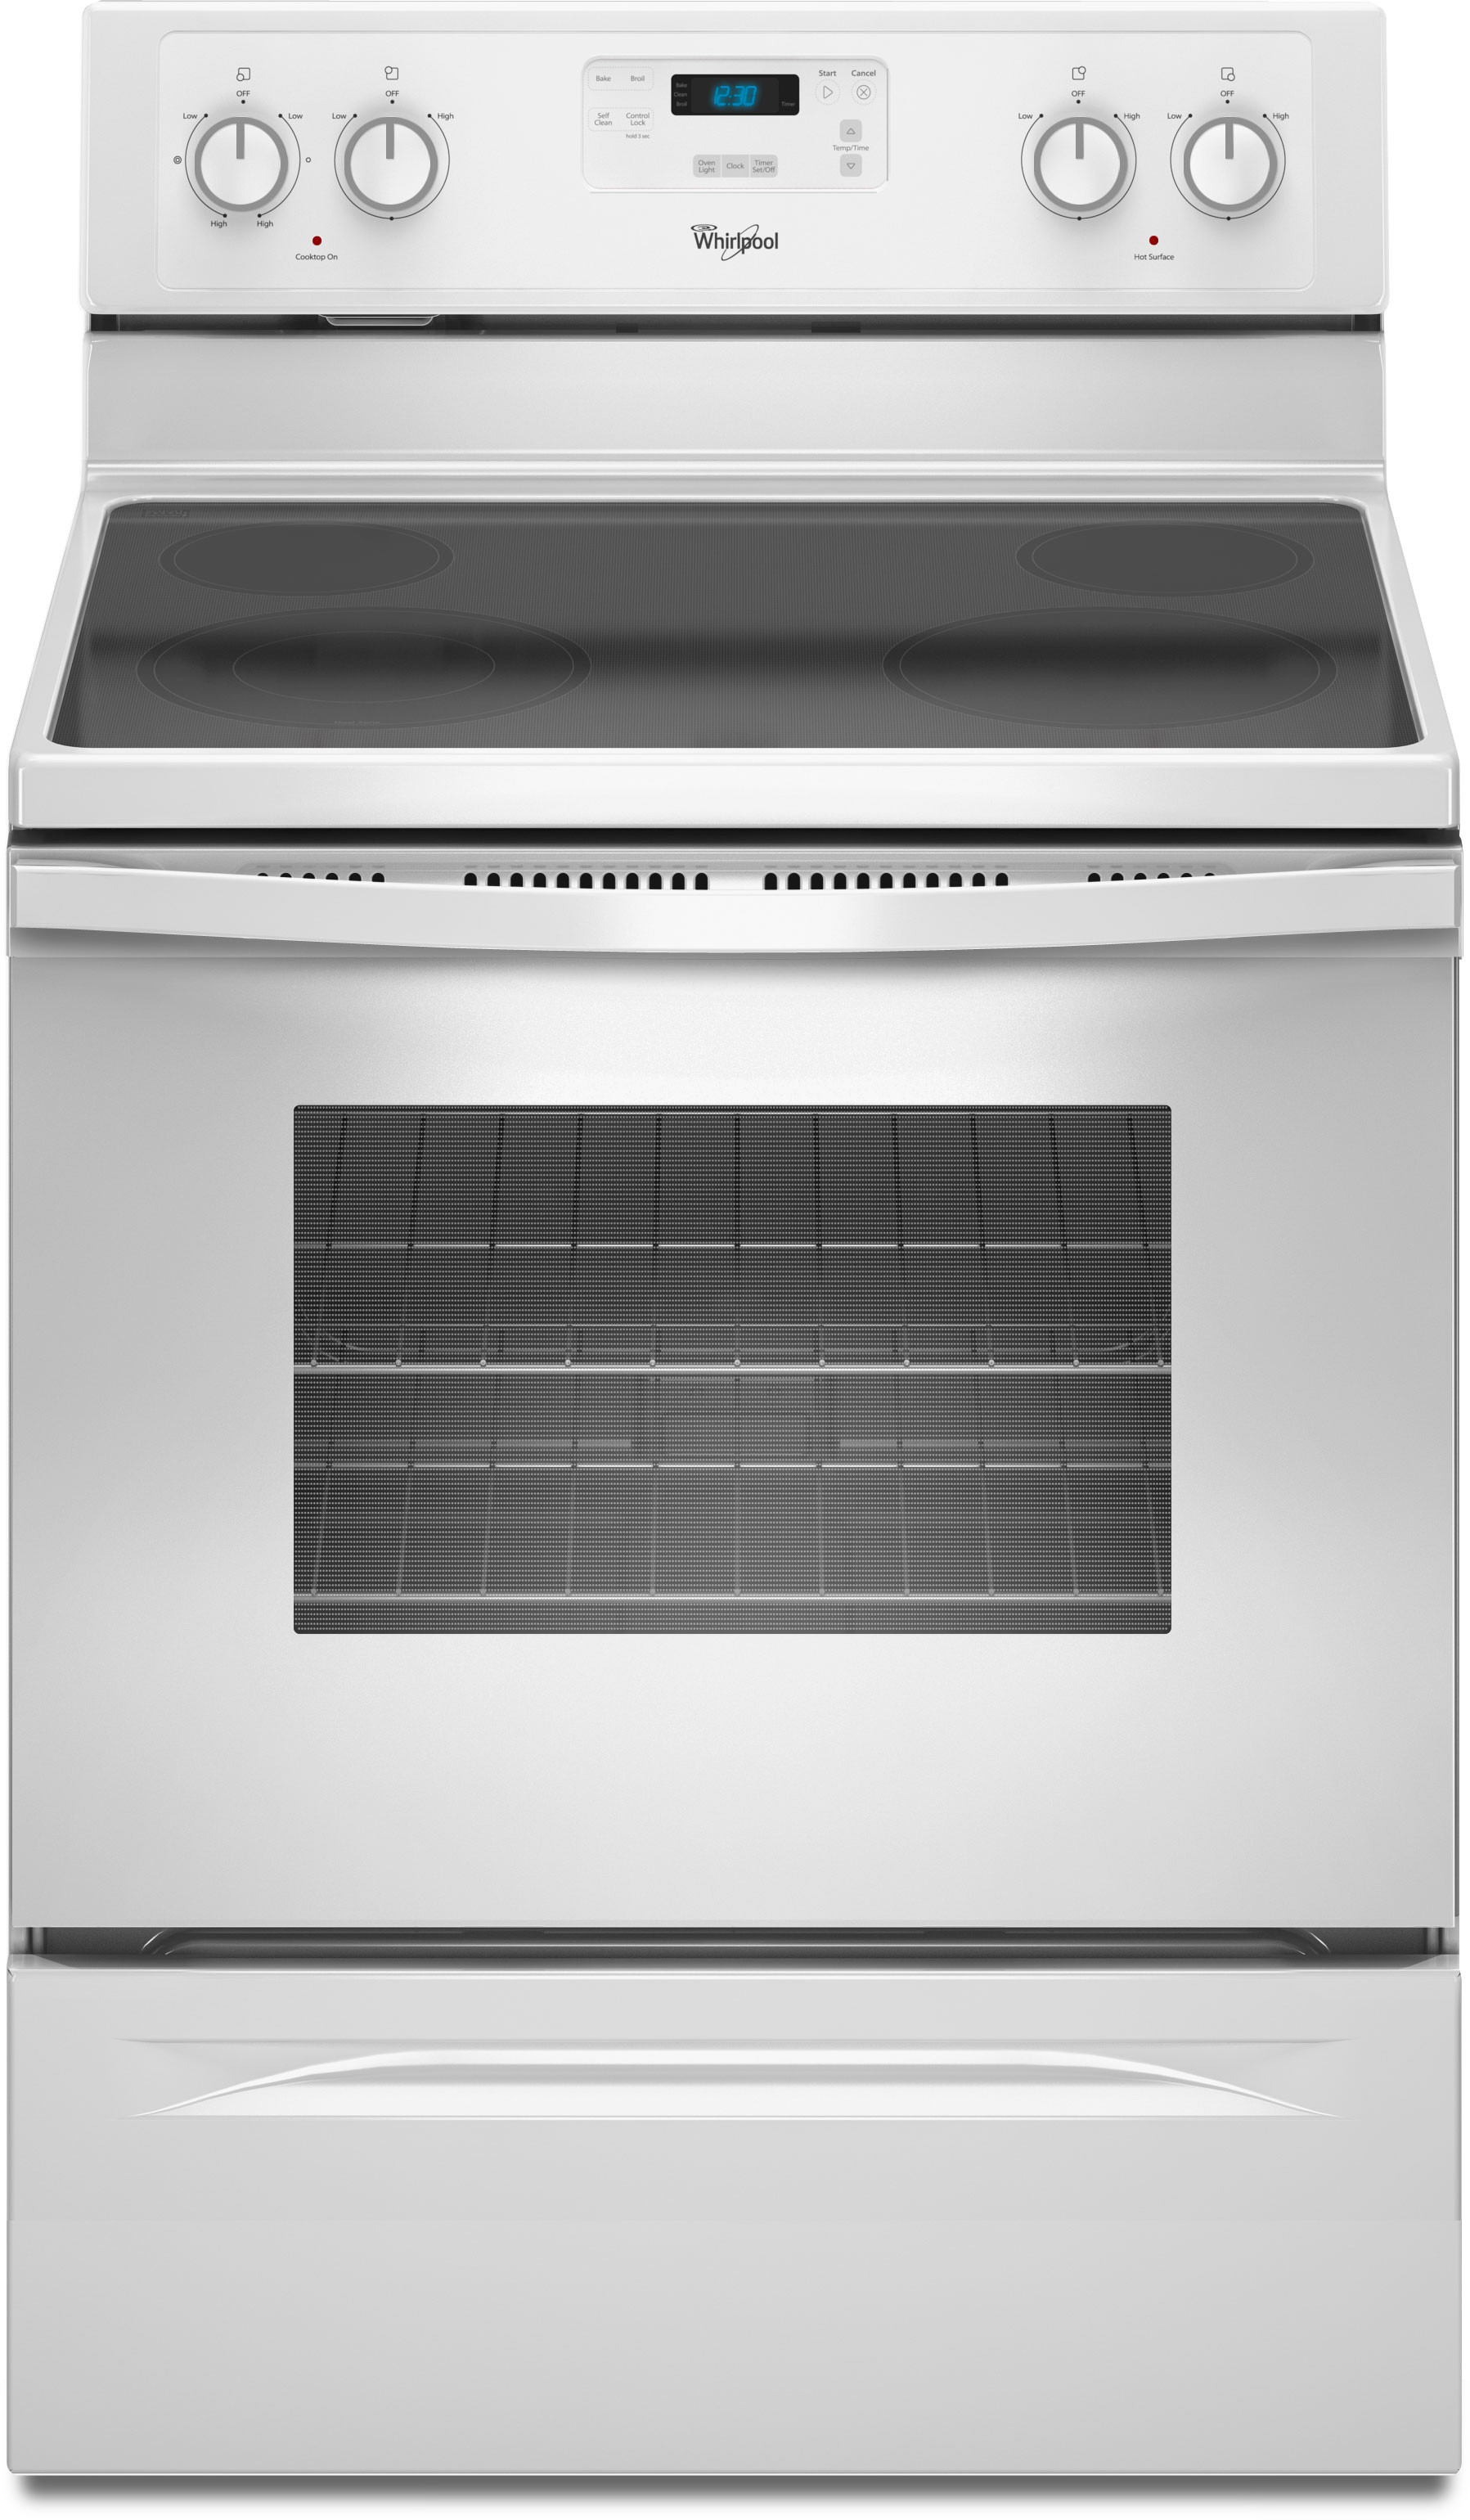 Whirlpool Wfe510s0aw 30 Inch Freestanding Electric Range